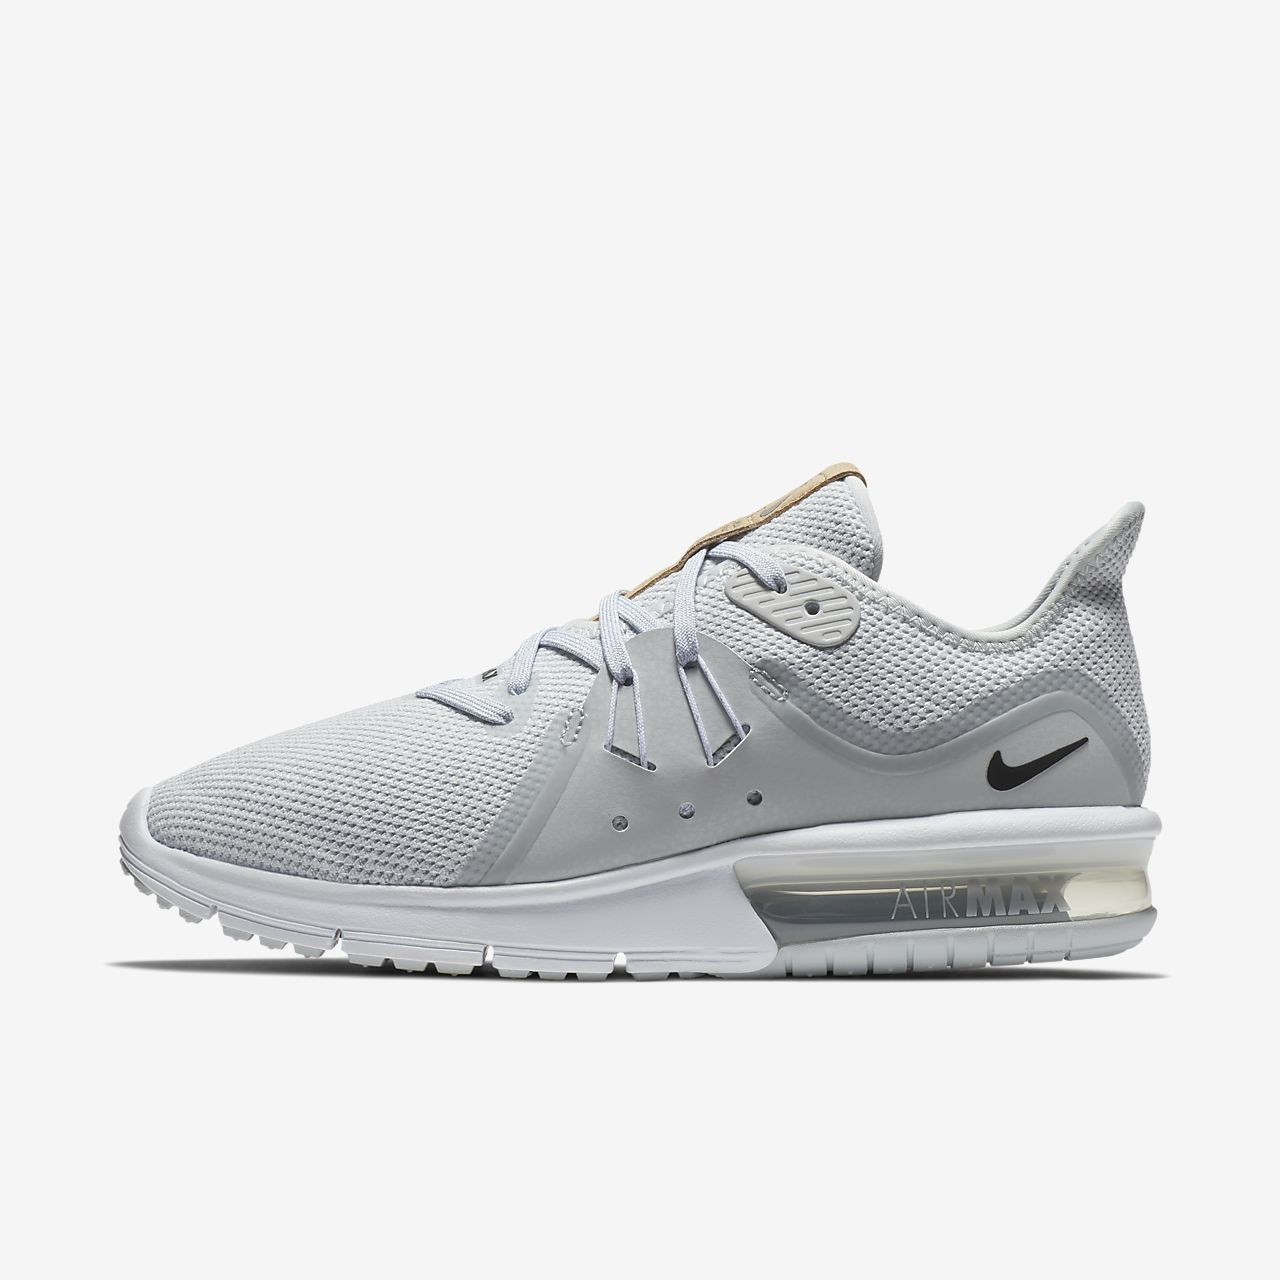 c3527dfe33a Nike Air Max Sequent 3 Women s Shoe. Nike.com ZA